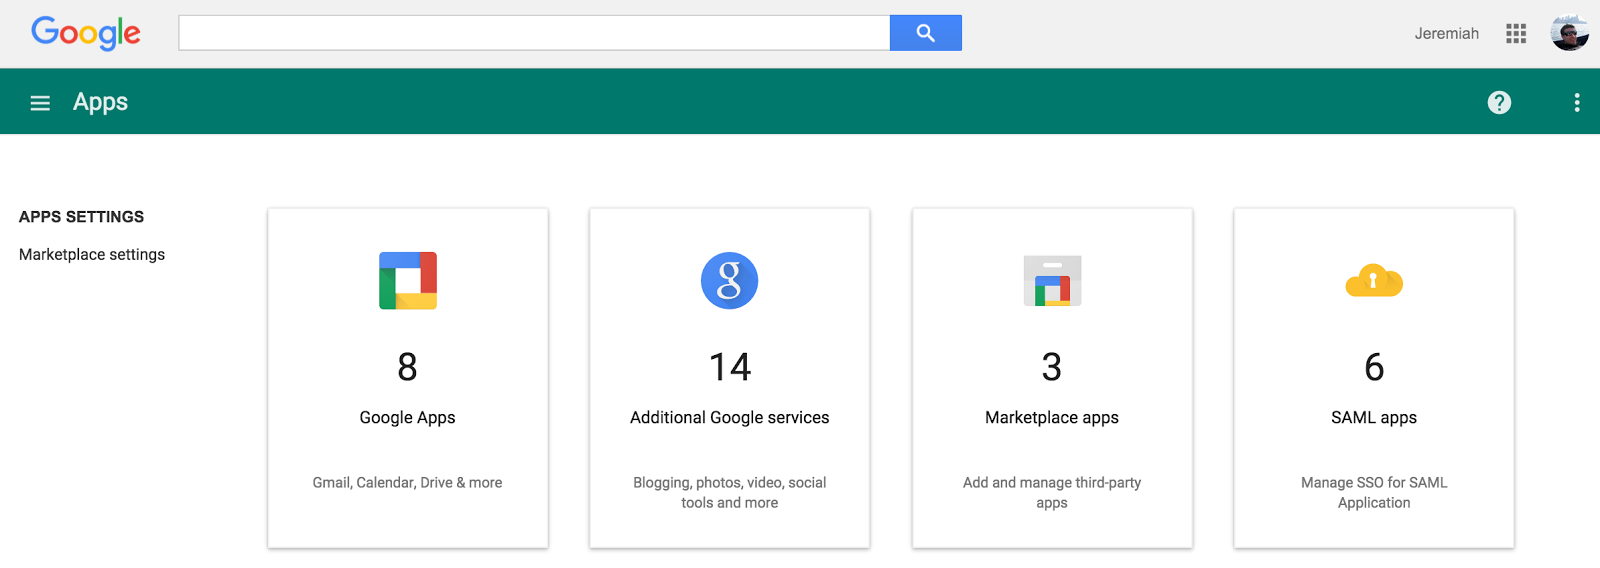 Official Google Cloud Blog: Google Apps identity, easy and secure